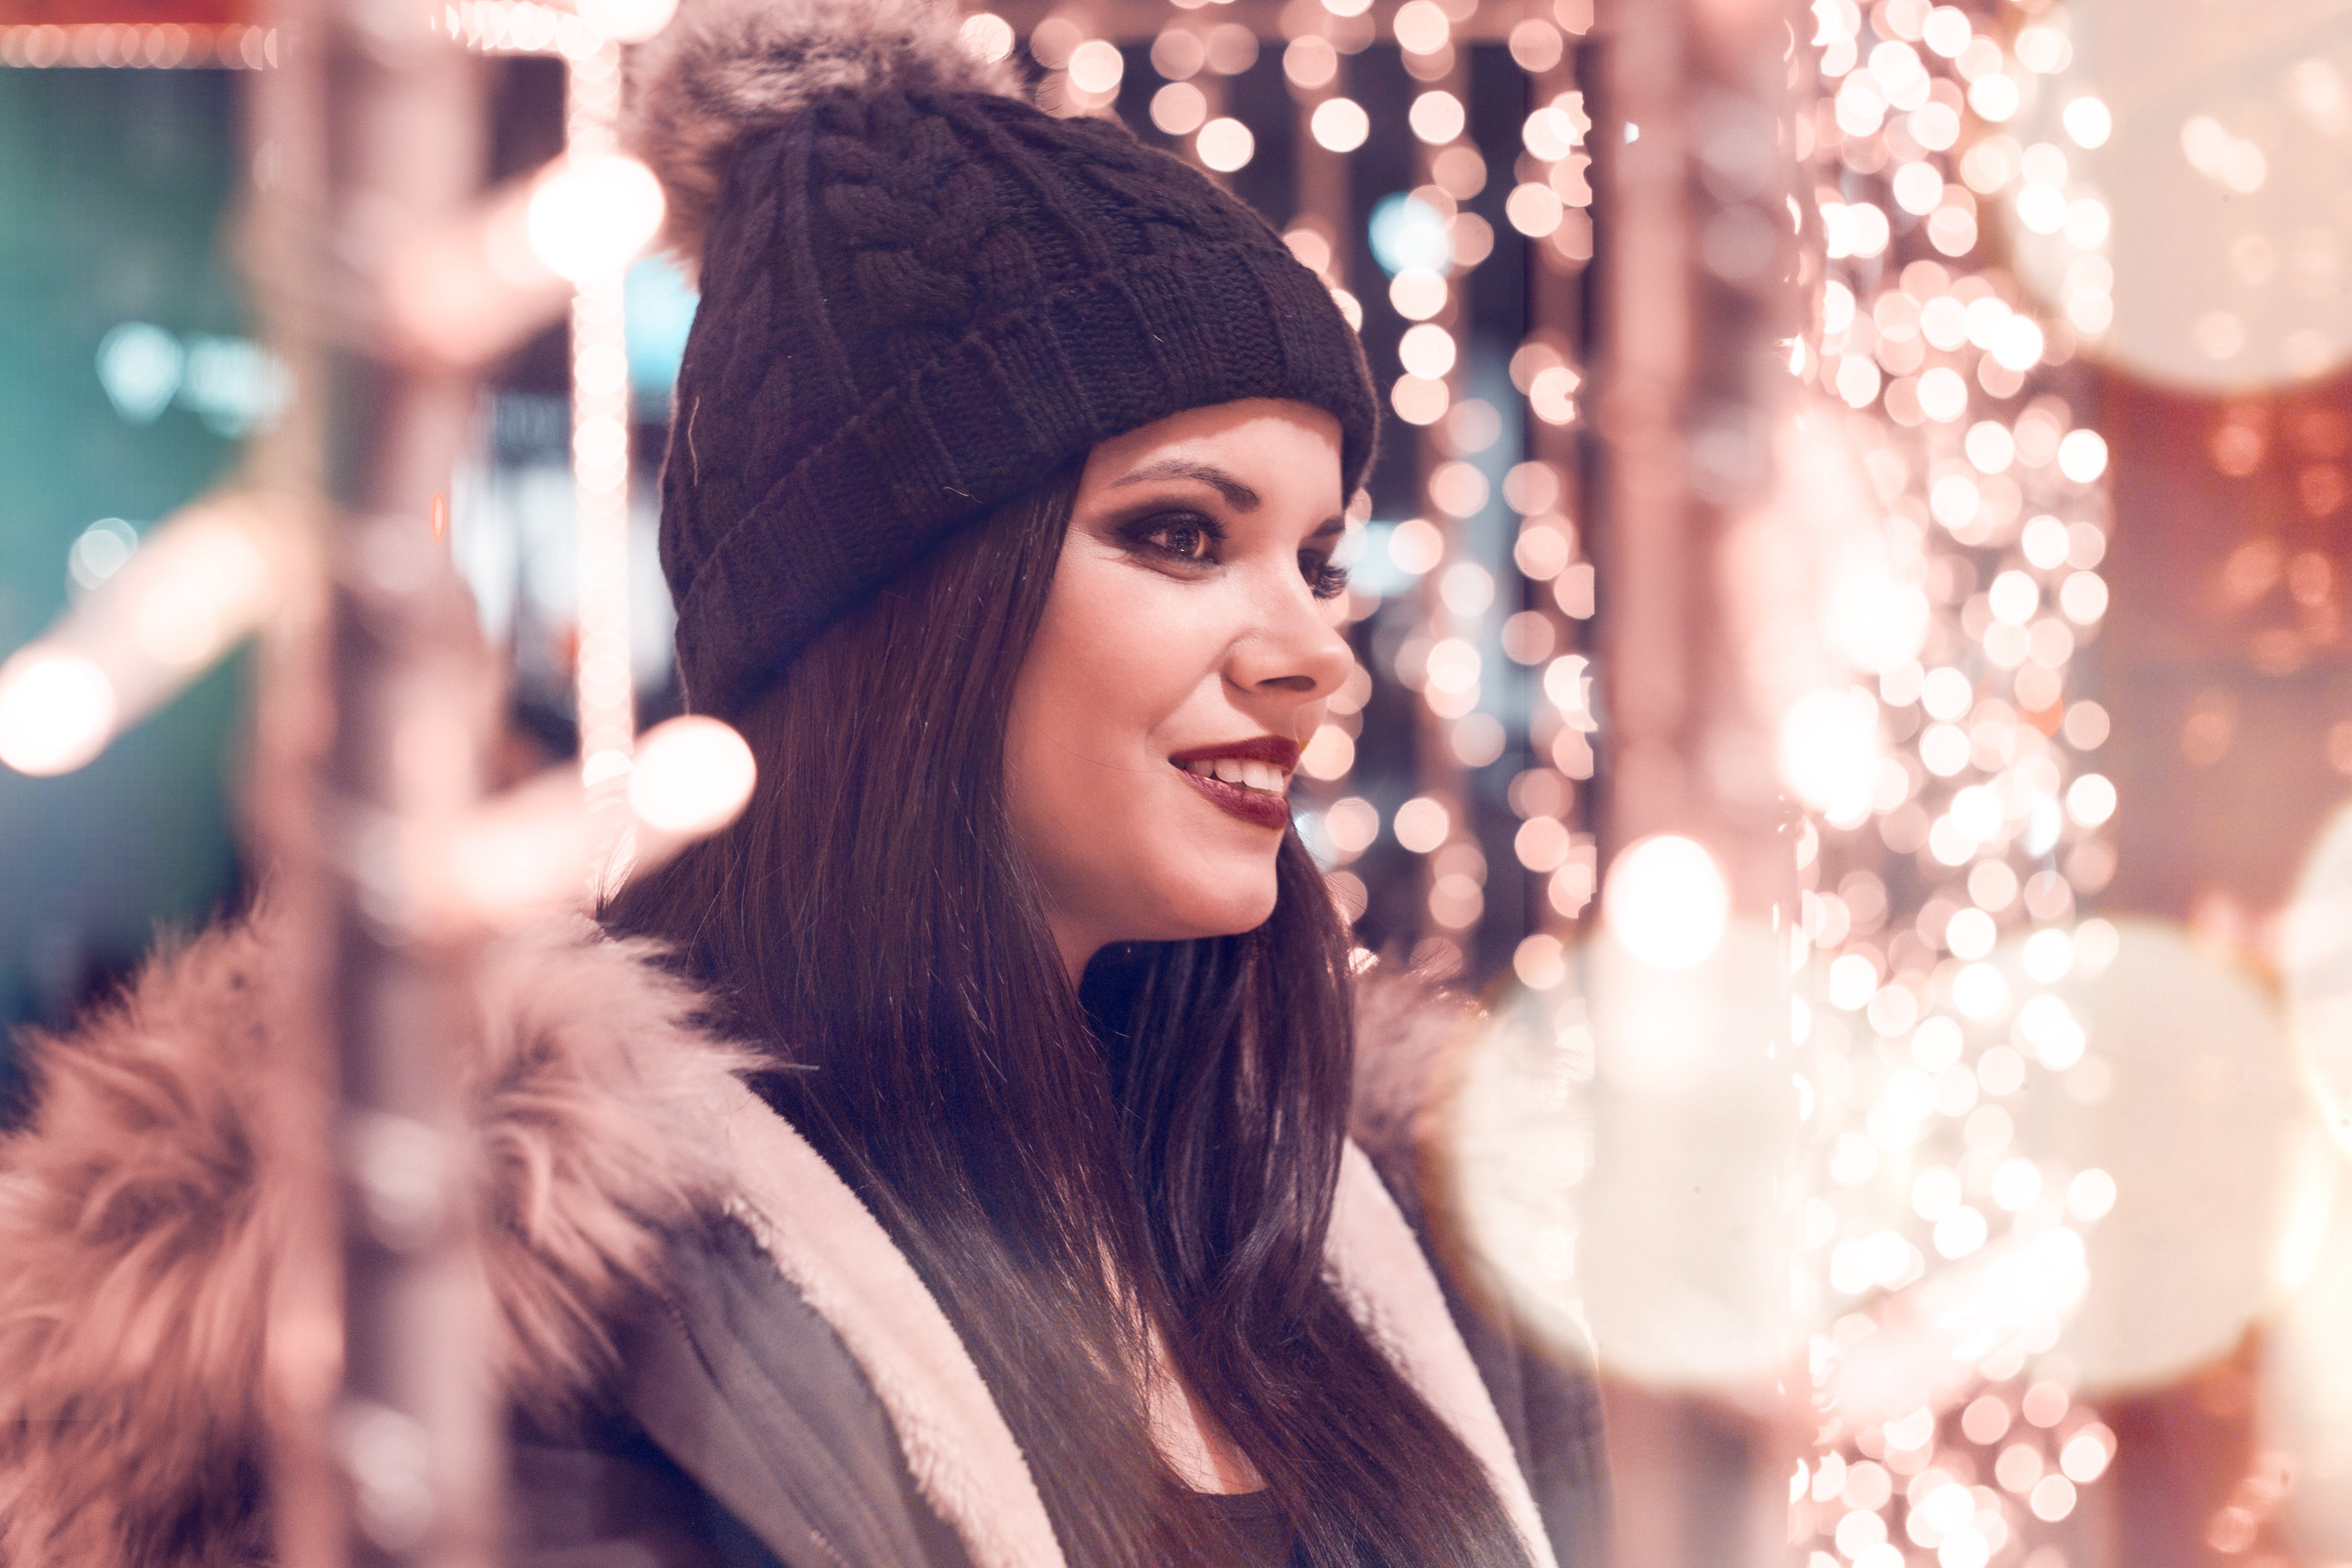 Selective Focus Photography of Woman Wearing Black Cap and Gray Parka Jacket Surrounded by Lights, Attractive, Person, Woman, Wear, HQ Photo